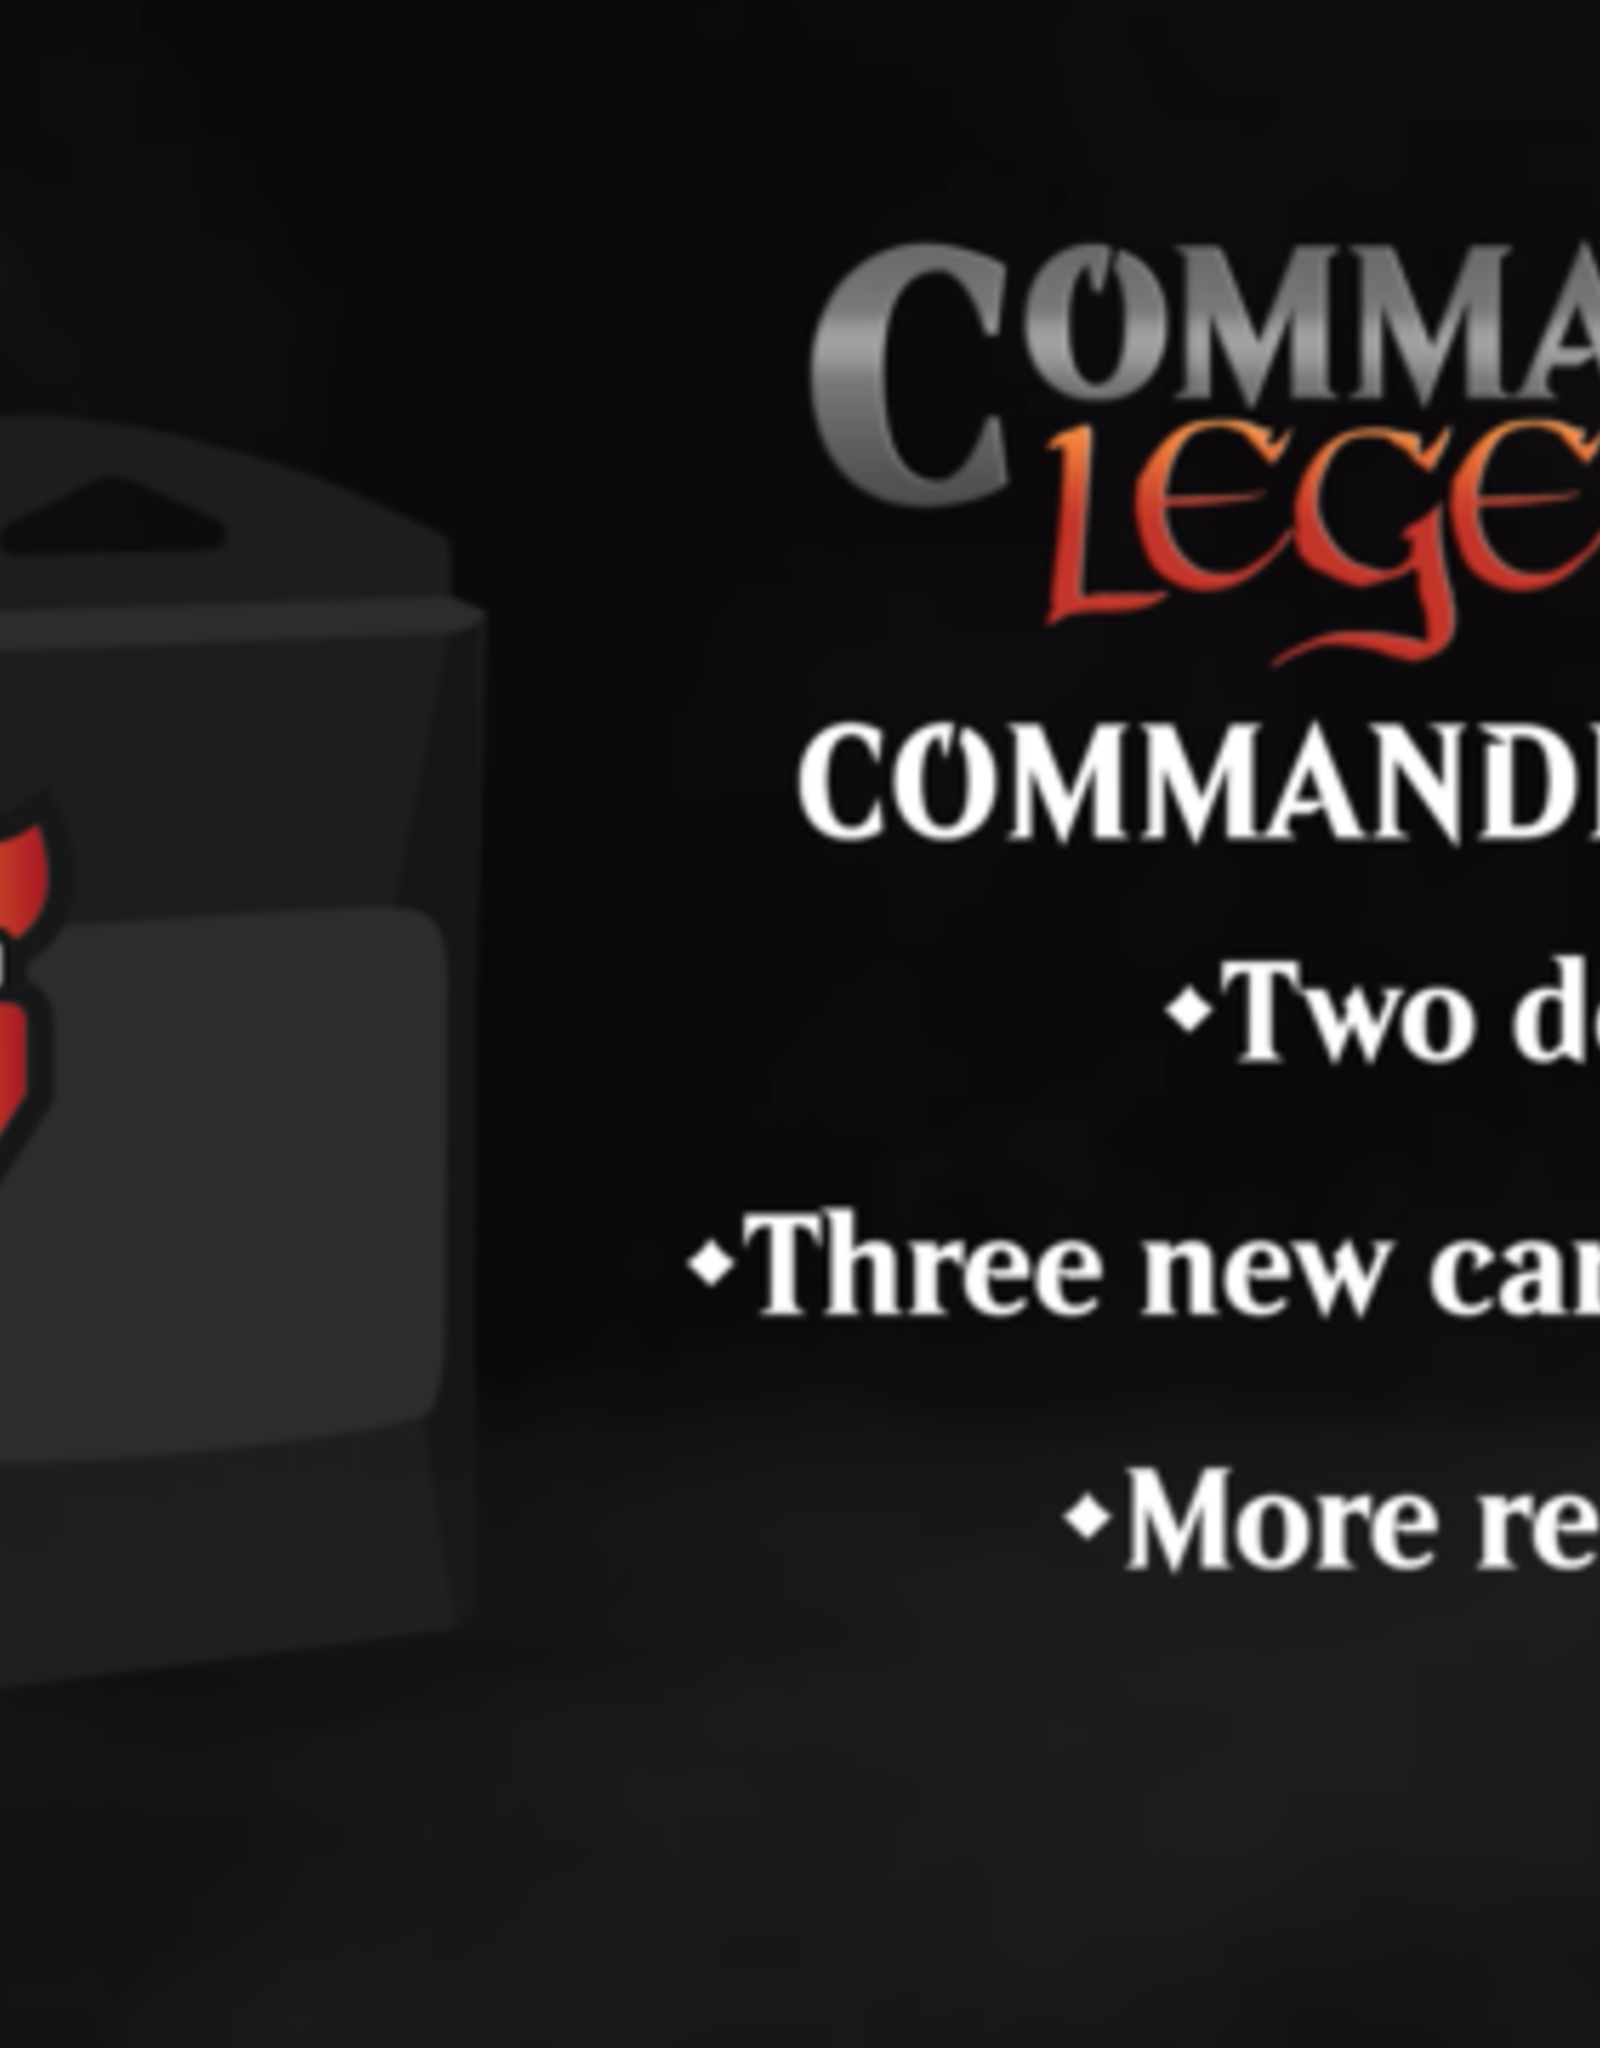 Wizards of the Coast Commander Legends Commander Decks (2 decks, 1 of each) [Preorder]